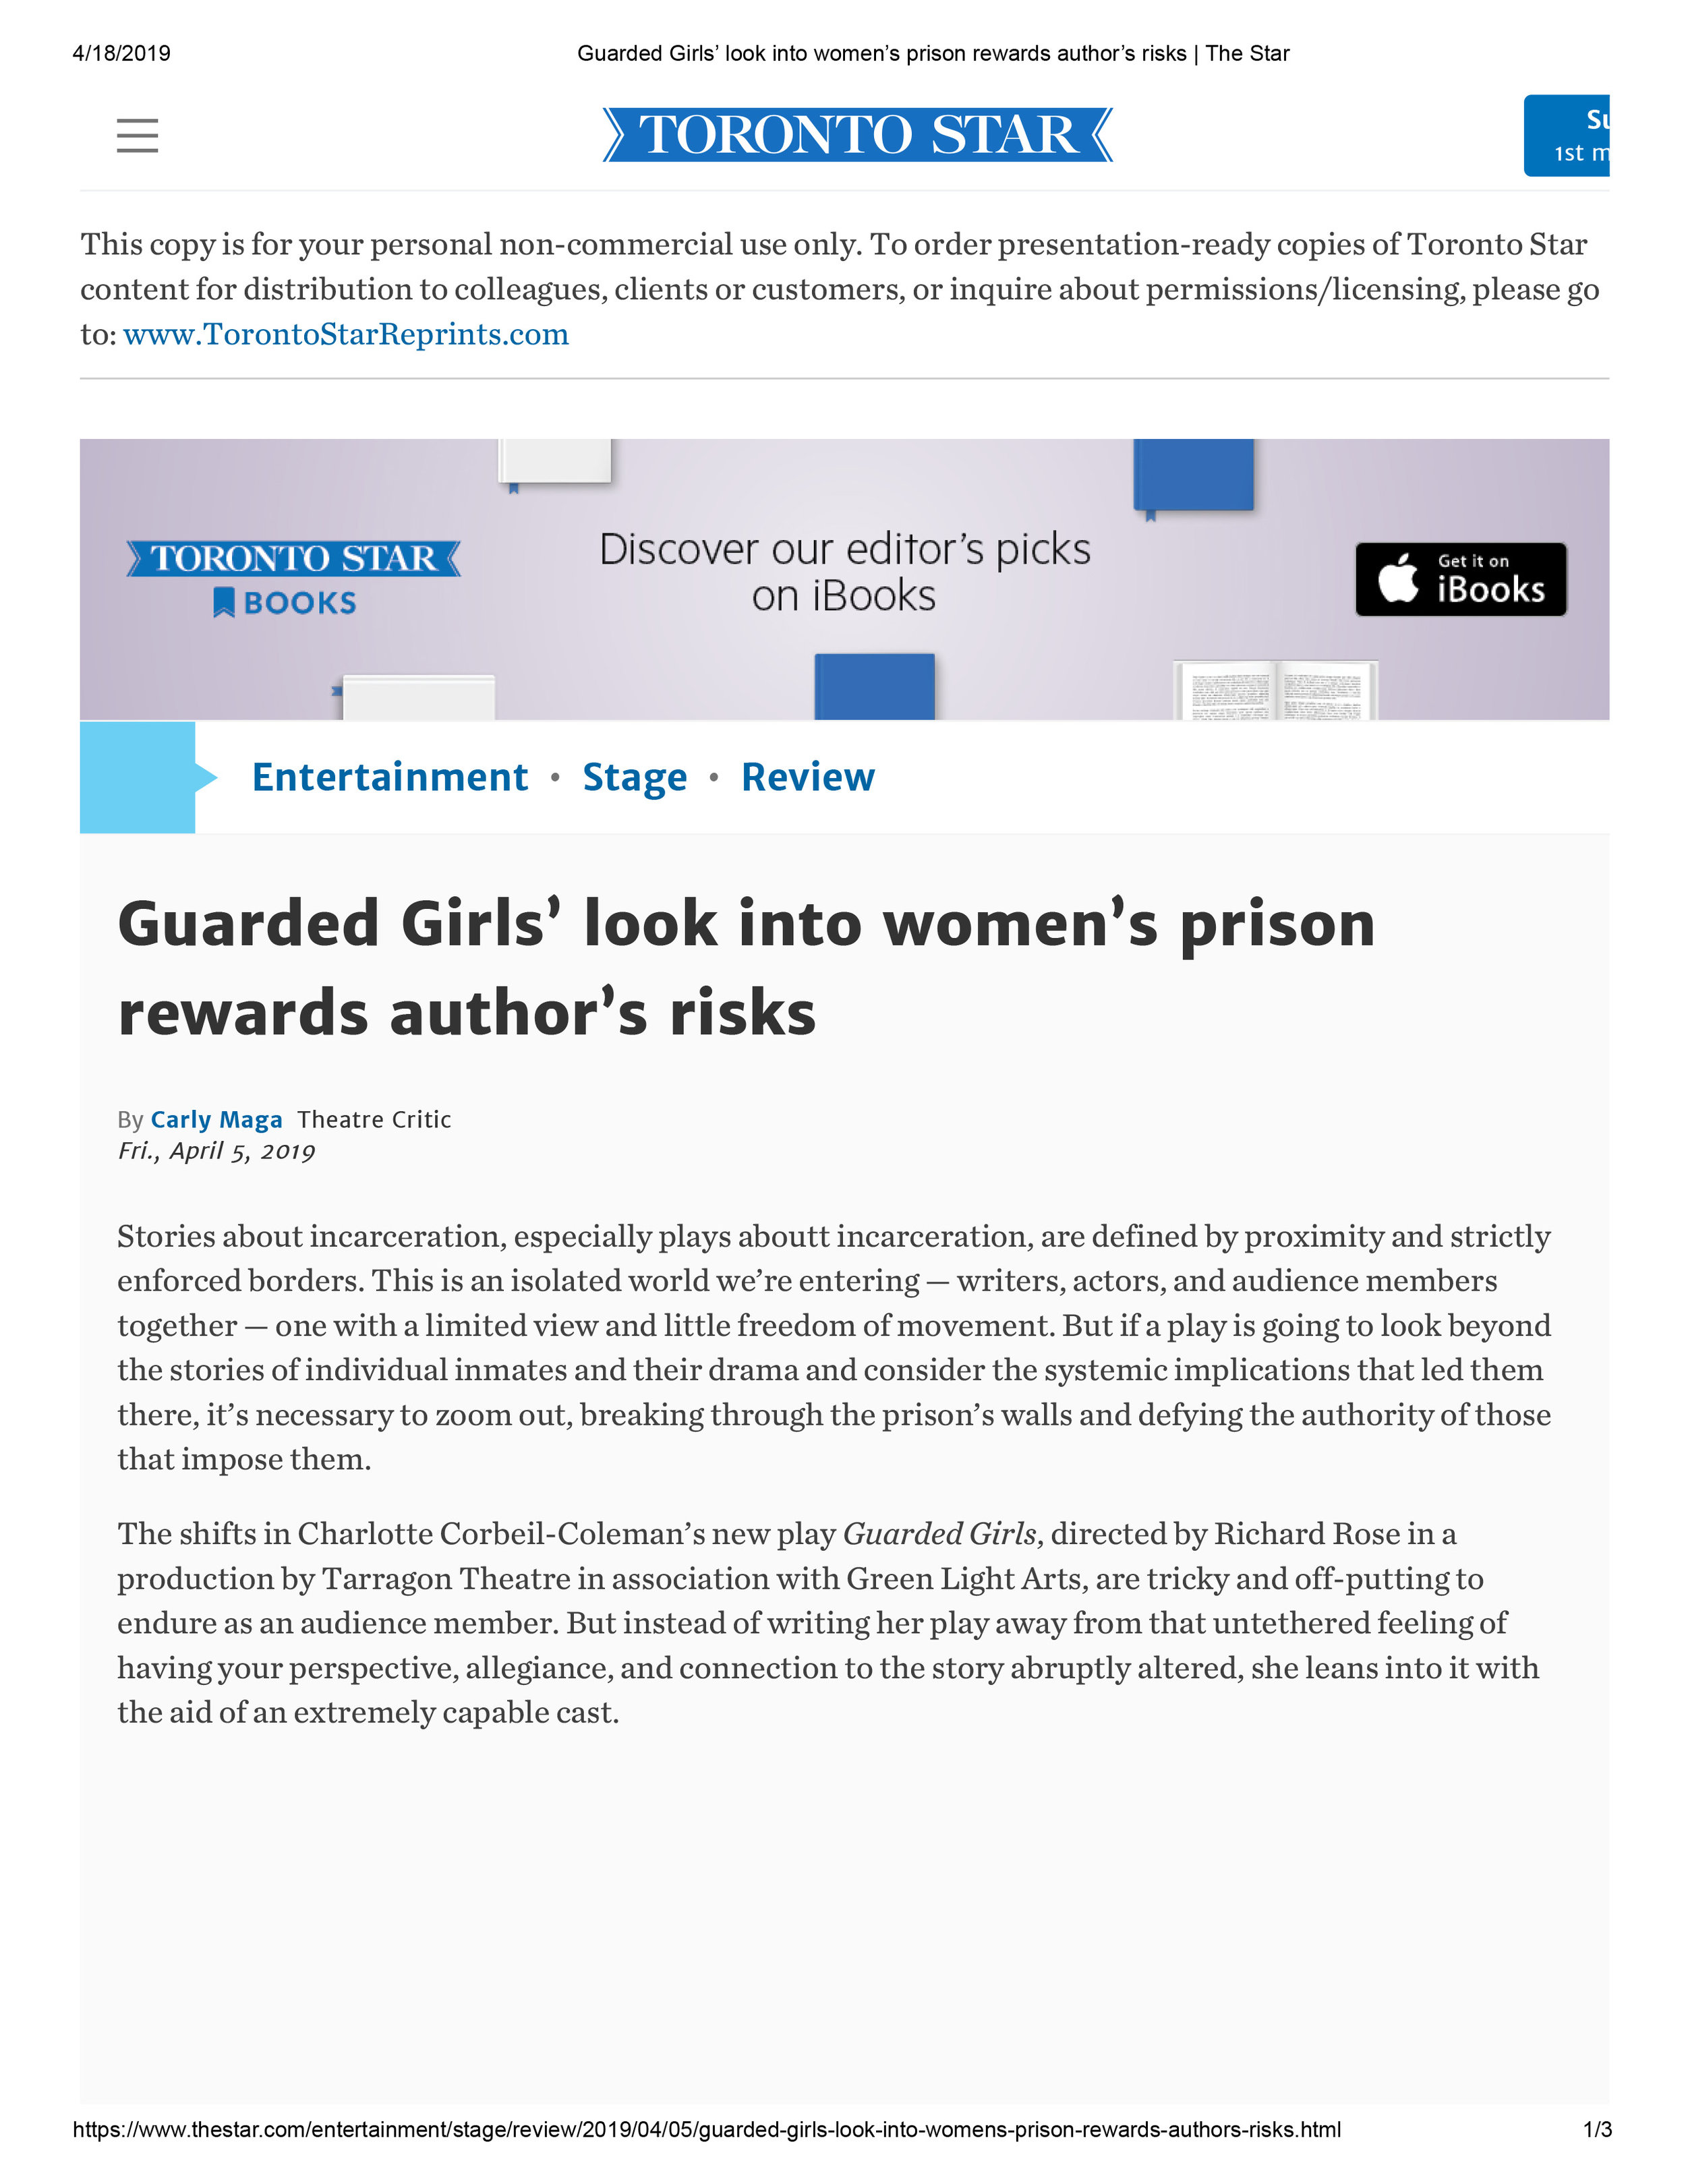 Guarded Girls' look into women's prison rewards author's risks _ The Star.jpg